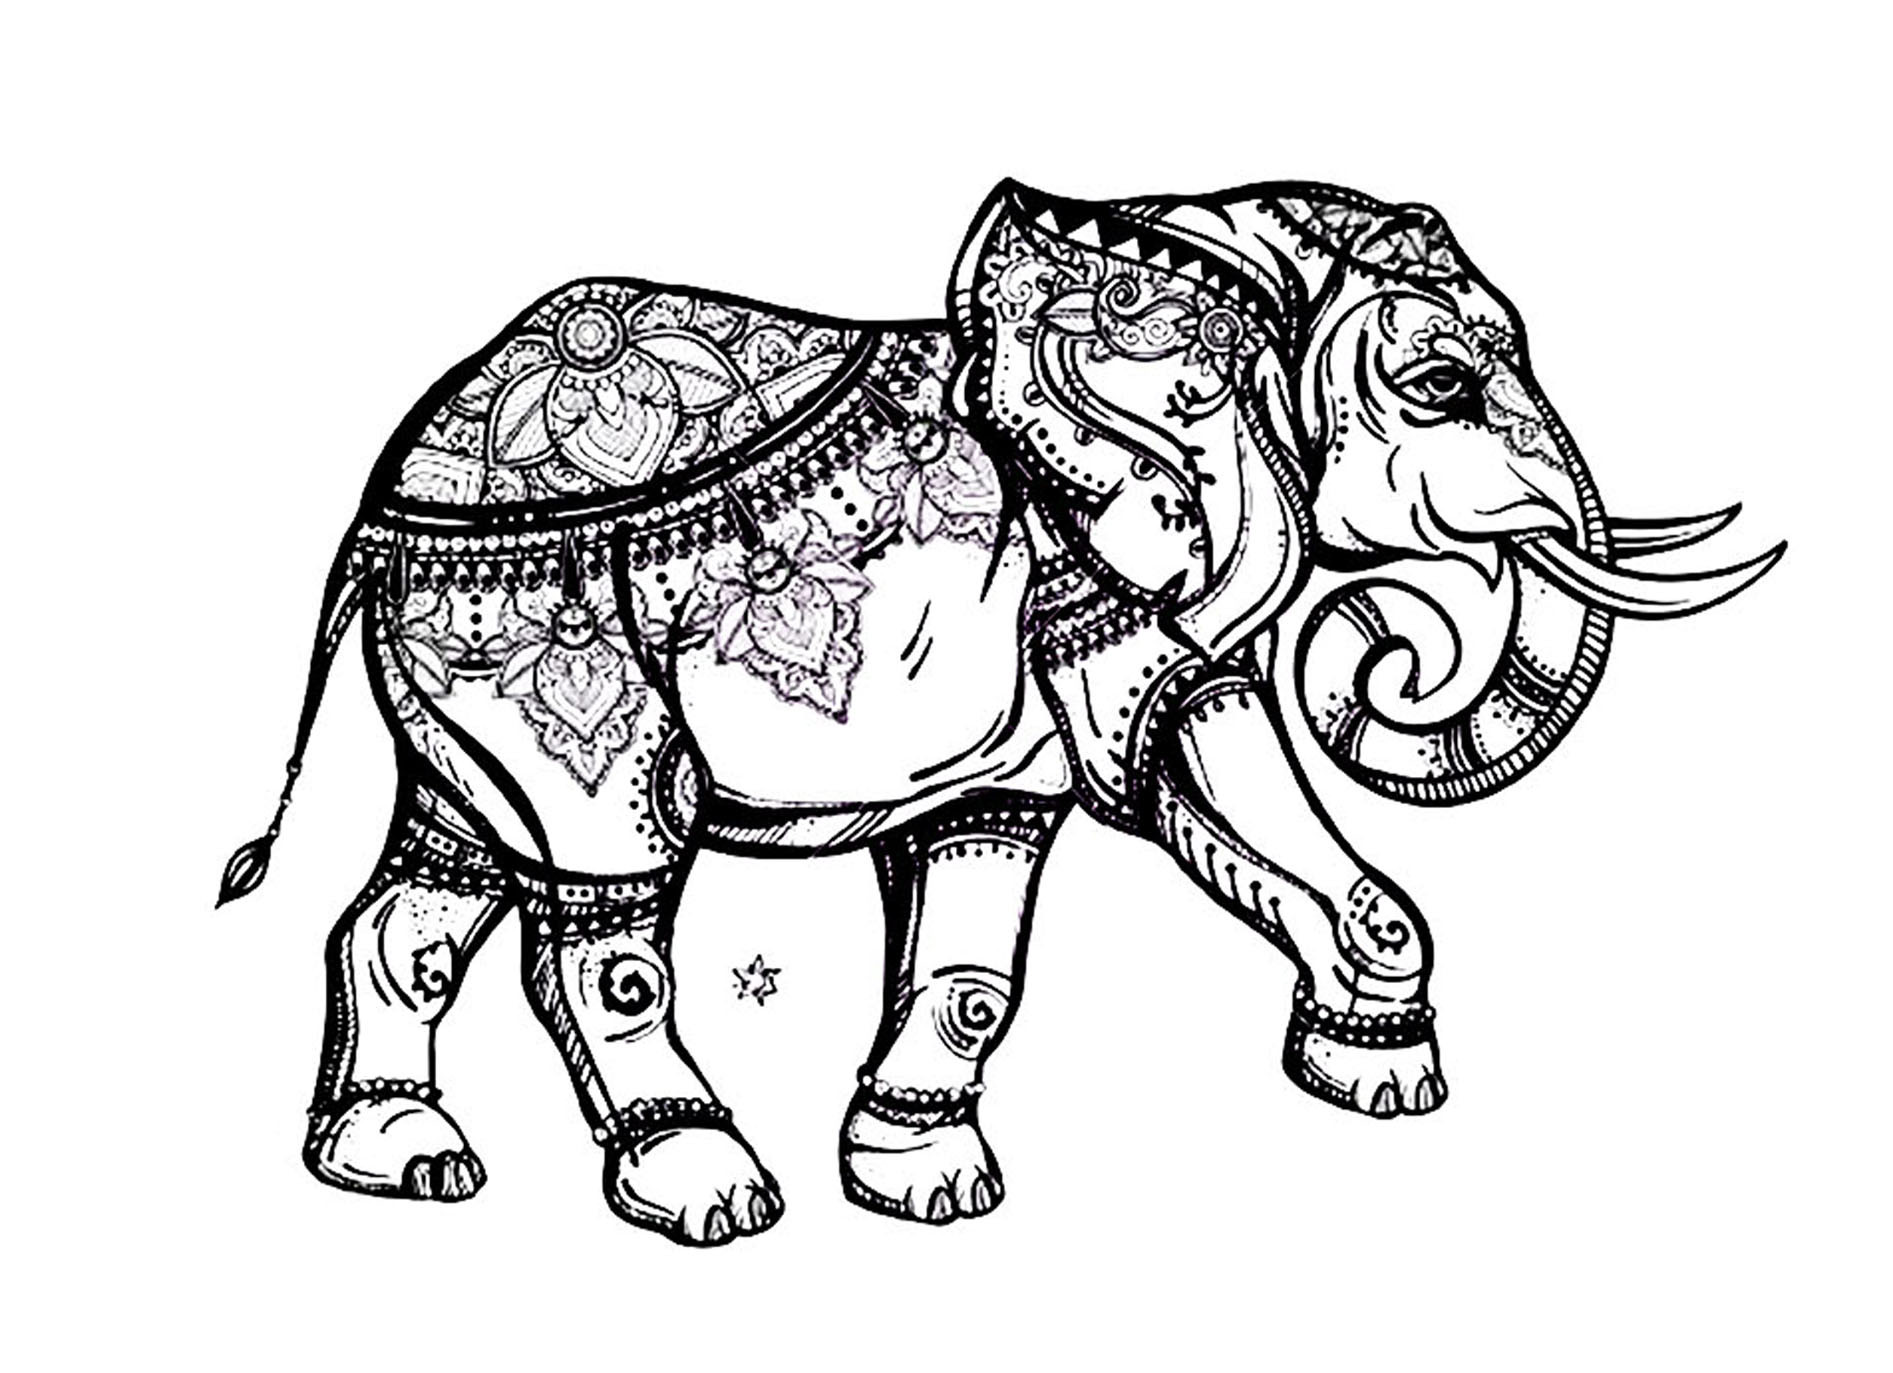 Elephant Coloring Book For Adults  Elegant elephant Elephants Adult Coloring Pages